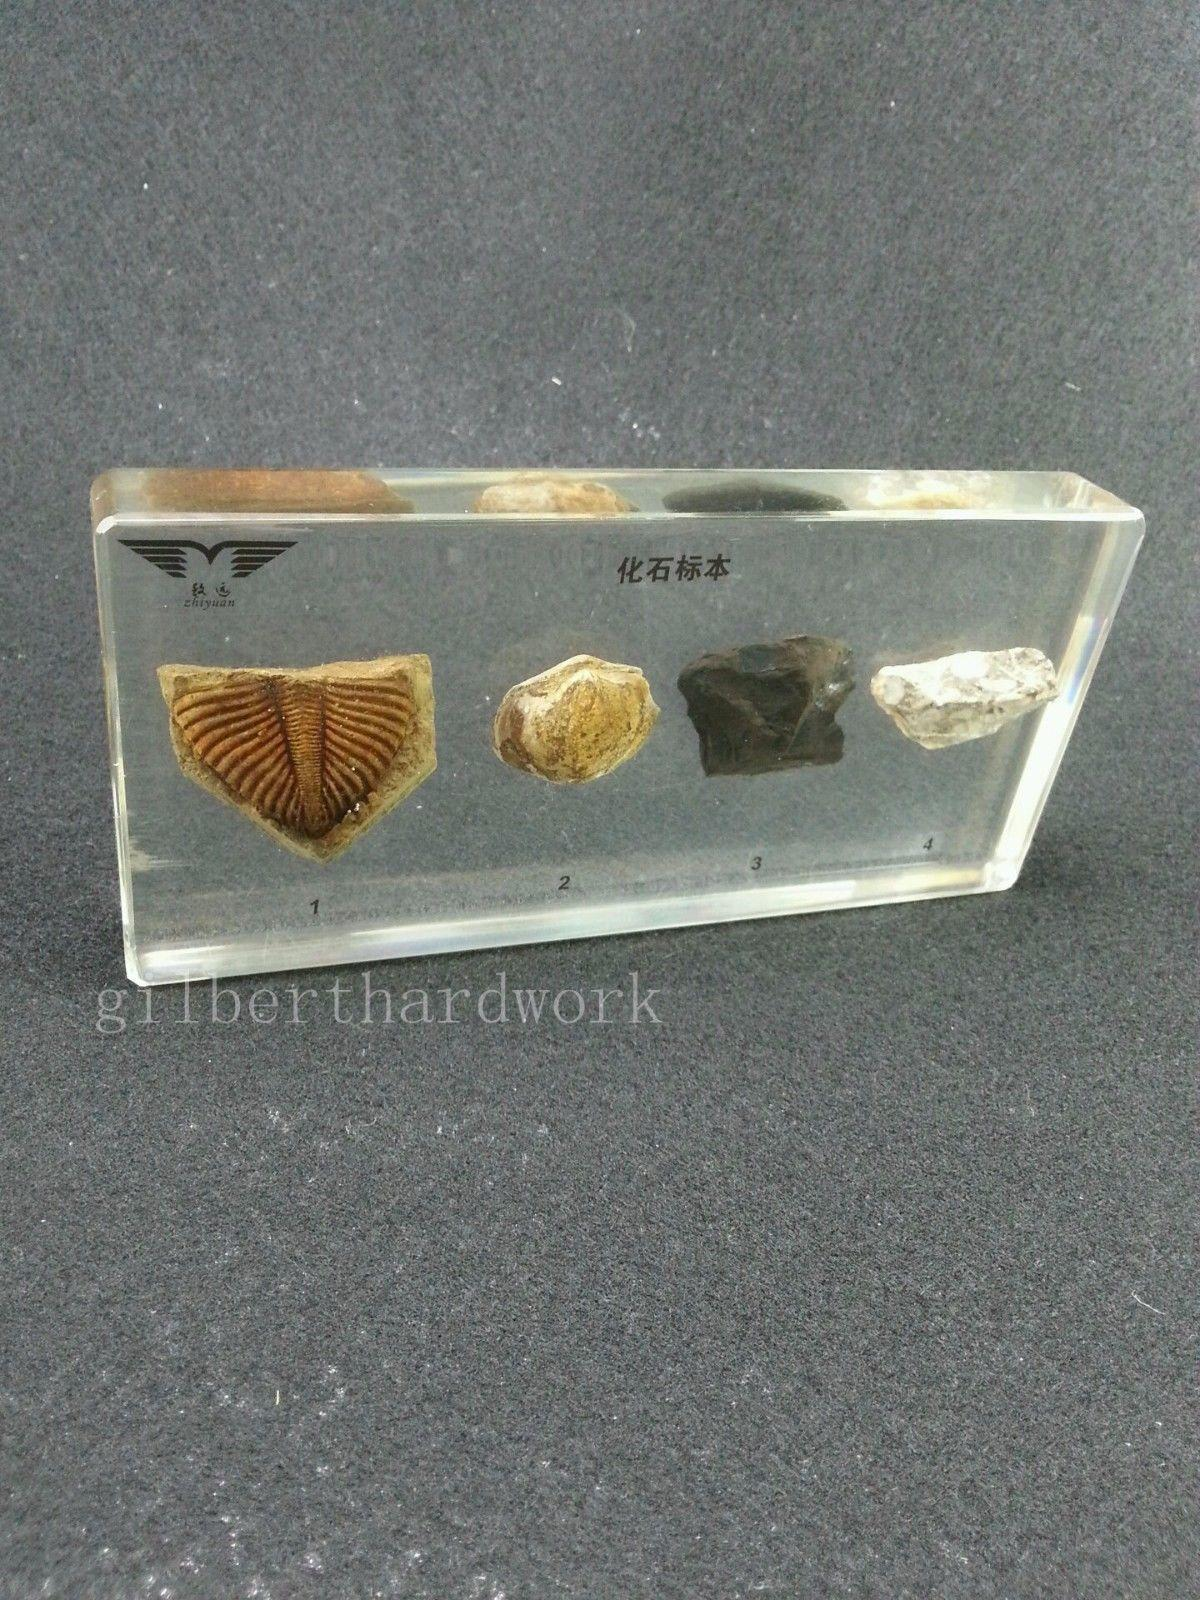 4 Kinds Of Fossil Specimens In Clear Lucite Block Educational Instrument Specime fishbone fispecimens in clear lucite block educational instrument middle school biology school teaching aids